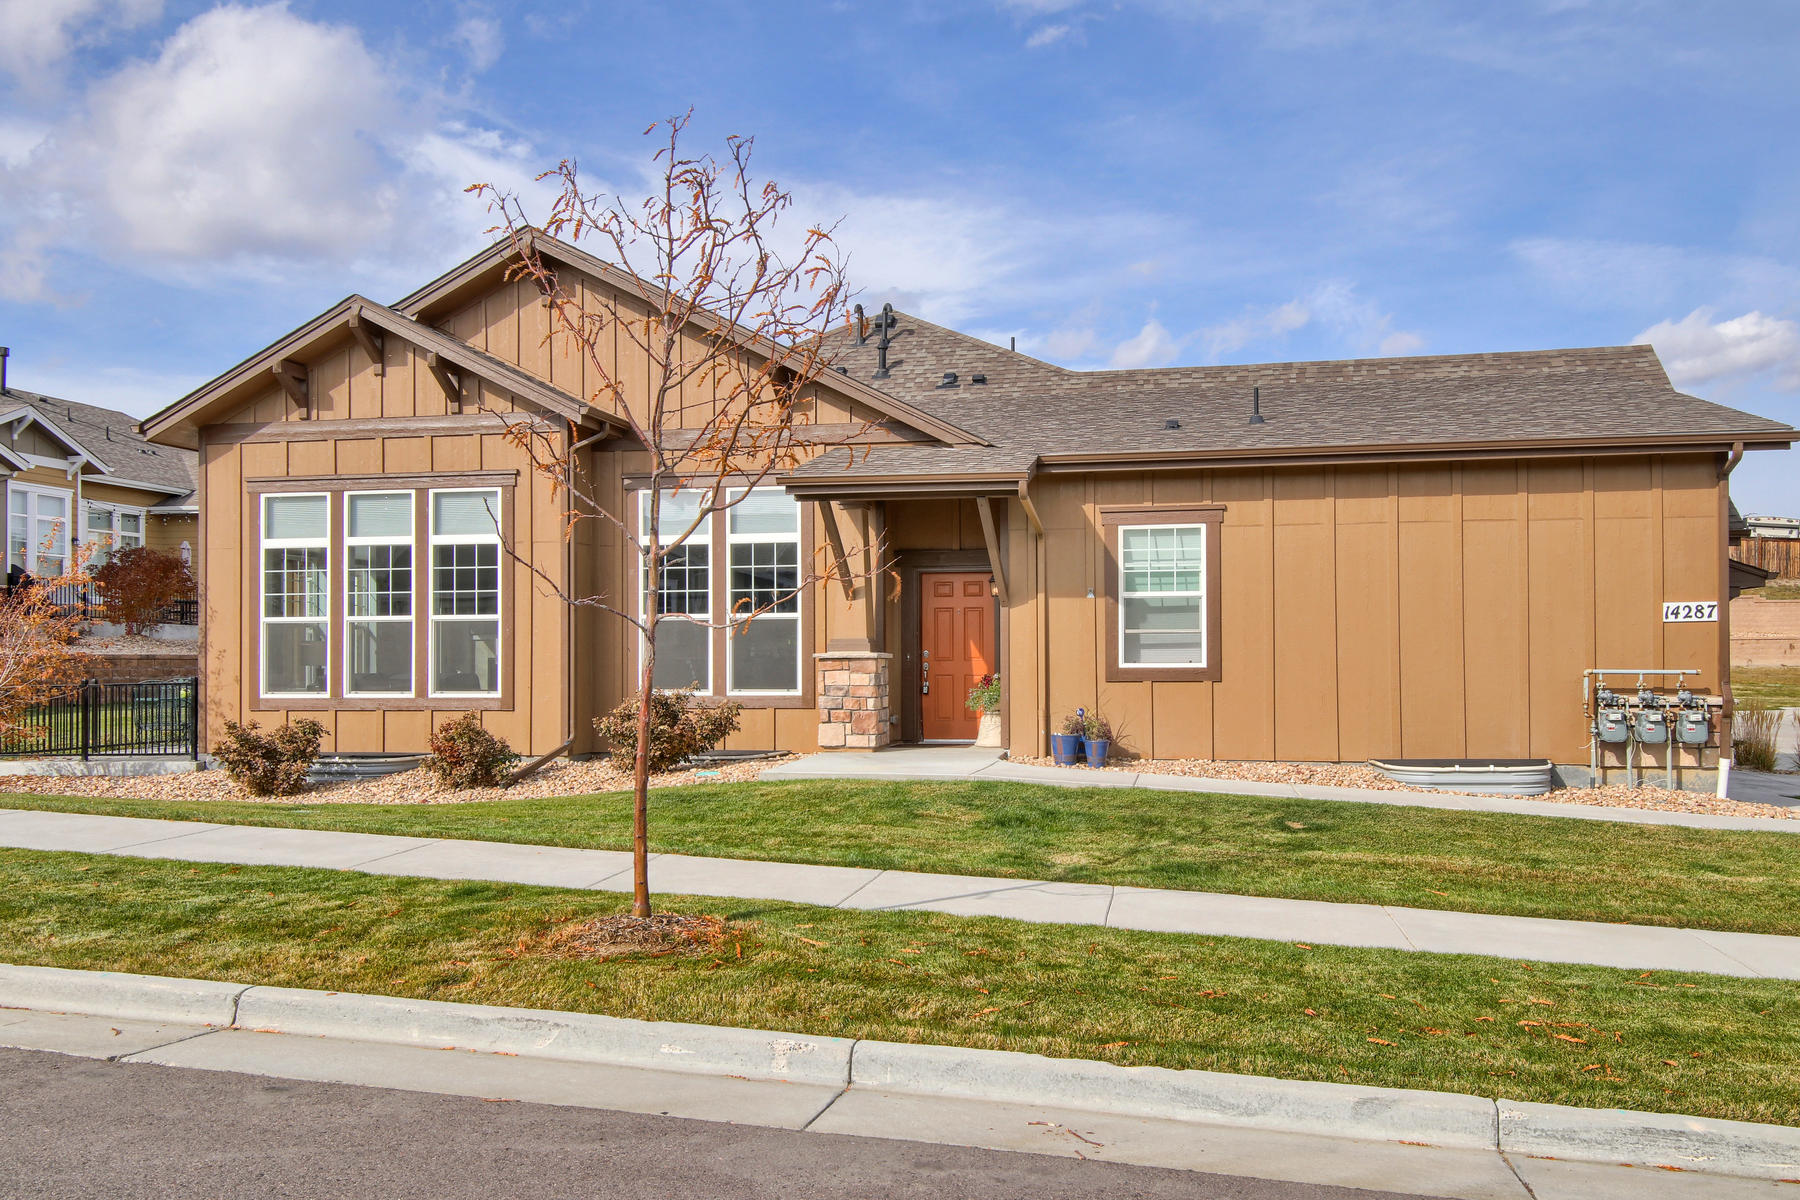 14287 W 88th Pl A Arvada CO-029-12-Exterior Front-MLS_Size.jpg